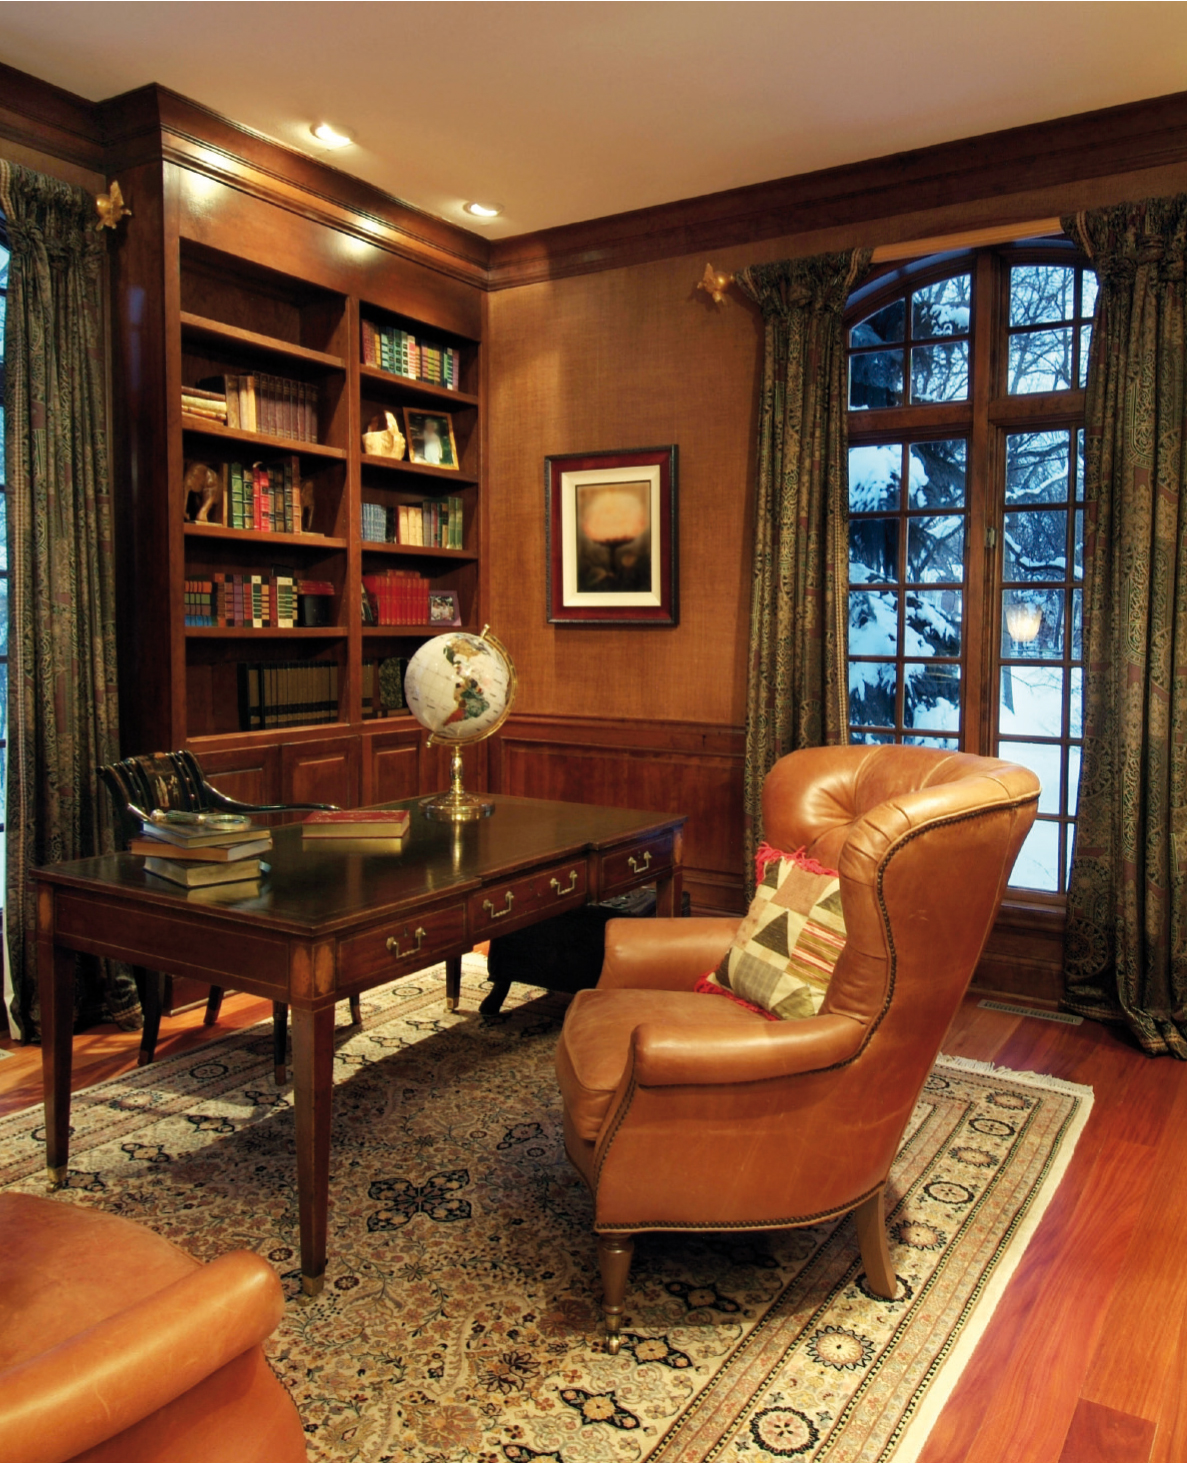 Small Home Office Ideas For Men And Women: The Gentleman's Room: Creating A Masculine Aesthetic